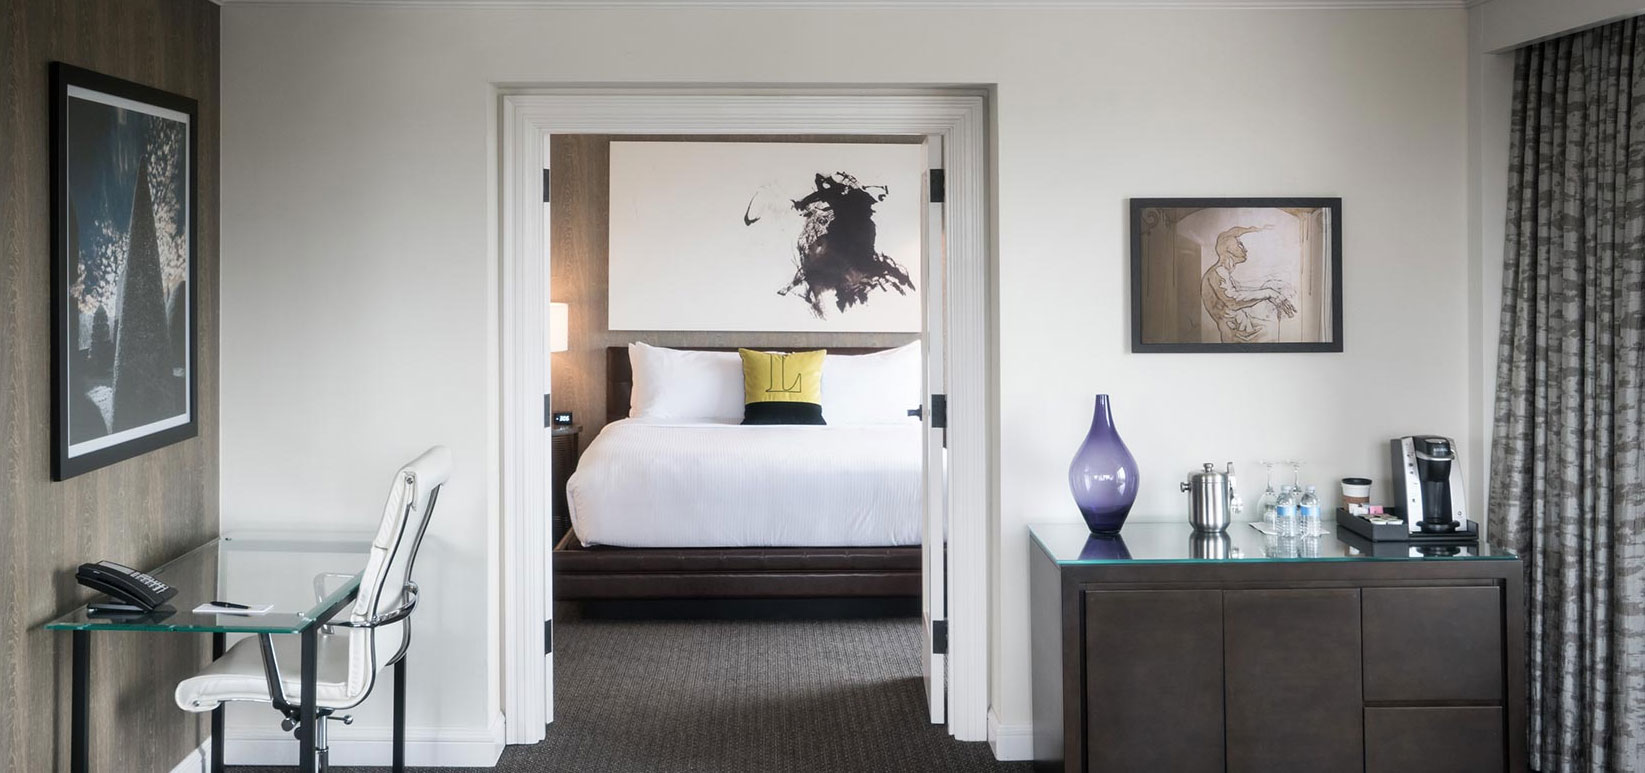 hospitality guest room art consulting for hotels